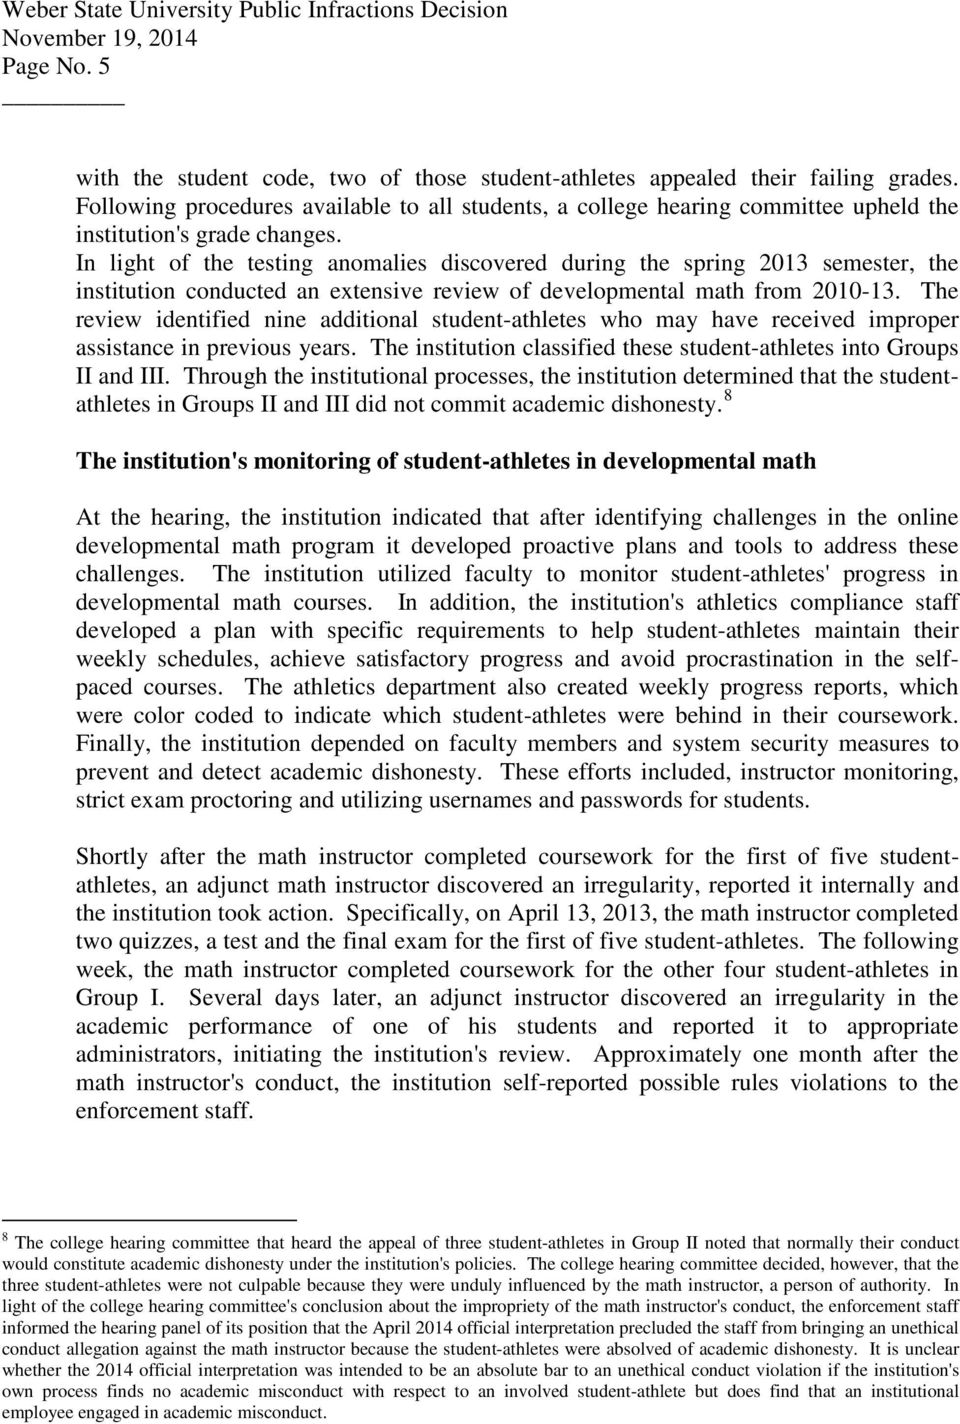 In light of the testing anomalies discovered during the spring 2013 semester, the institution conducted an extensive review of developmental math from 2010-13.